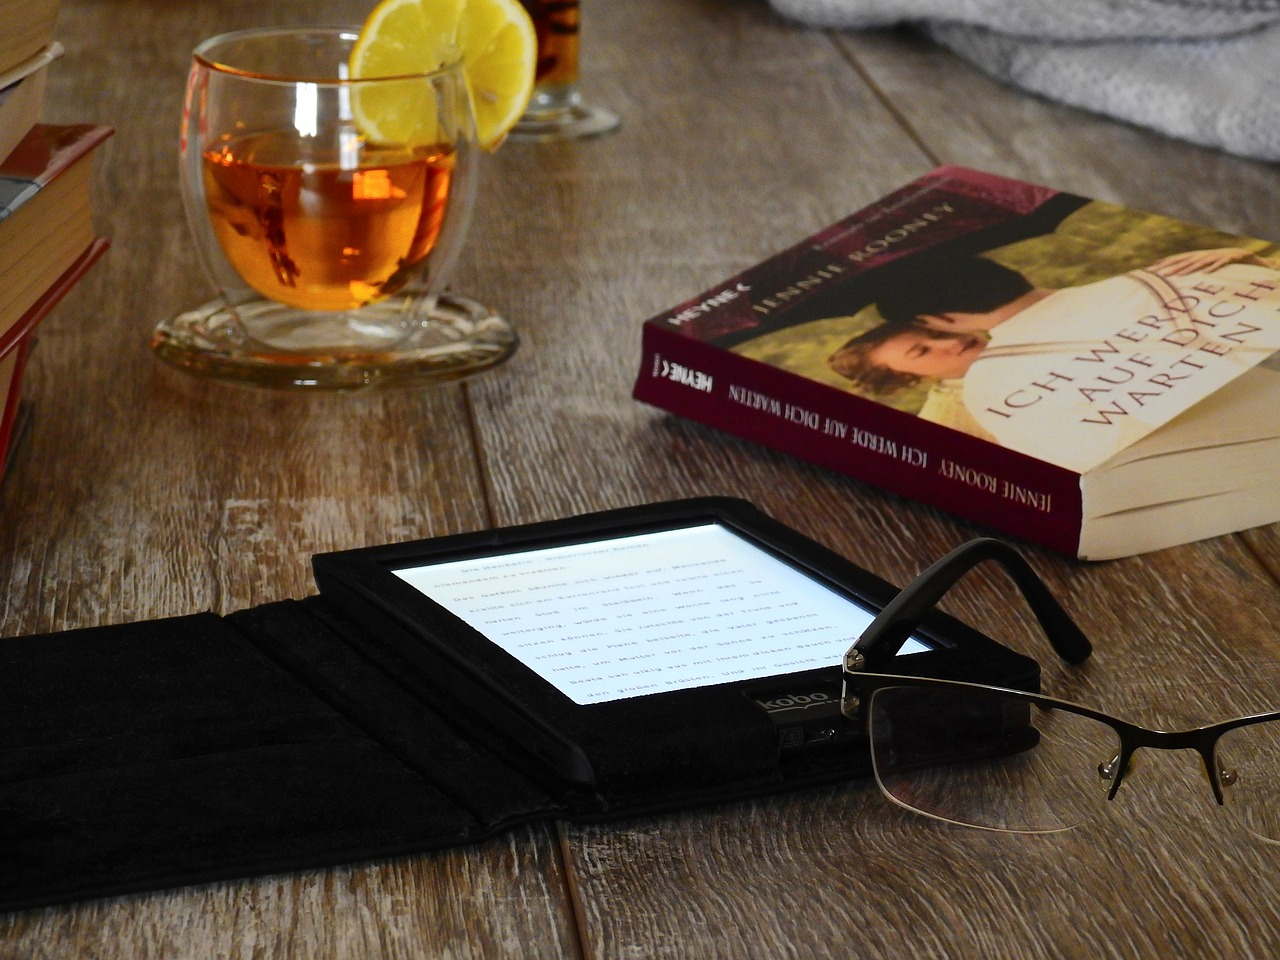 A table where someone is enjoying a cold drink, a paperback book, and an E-Reader